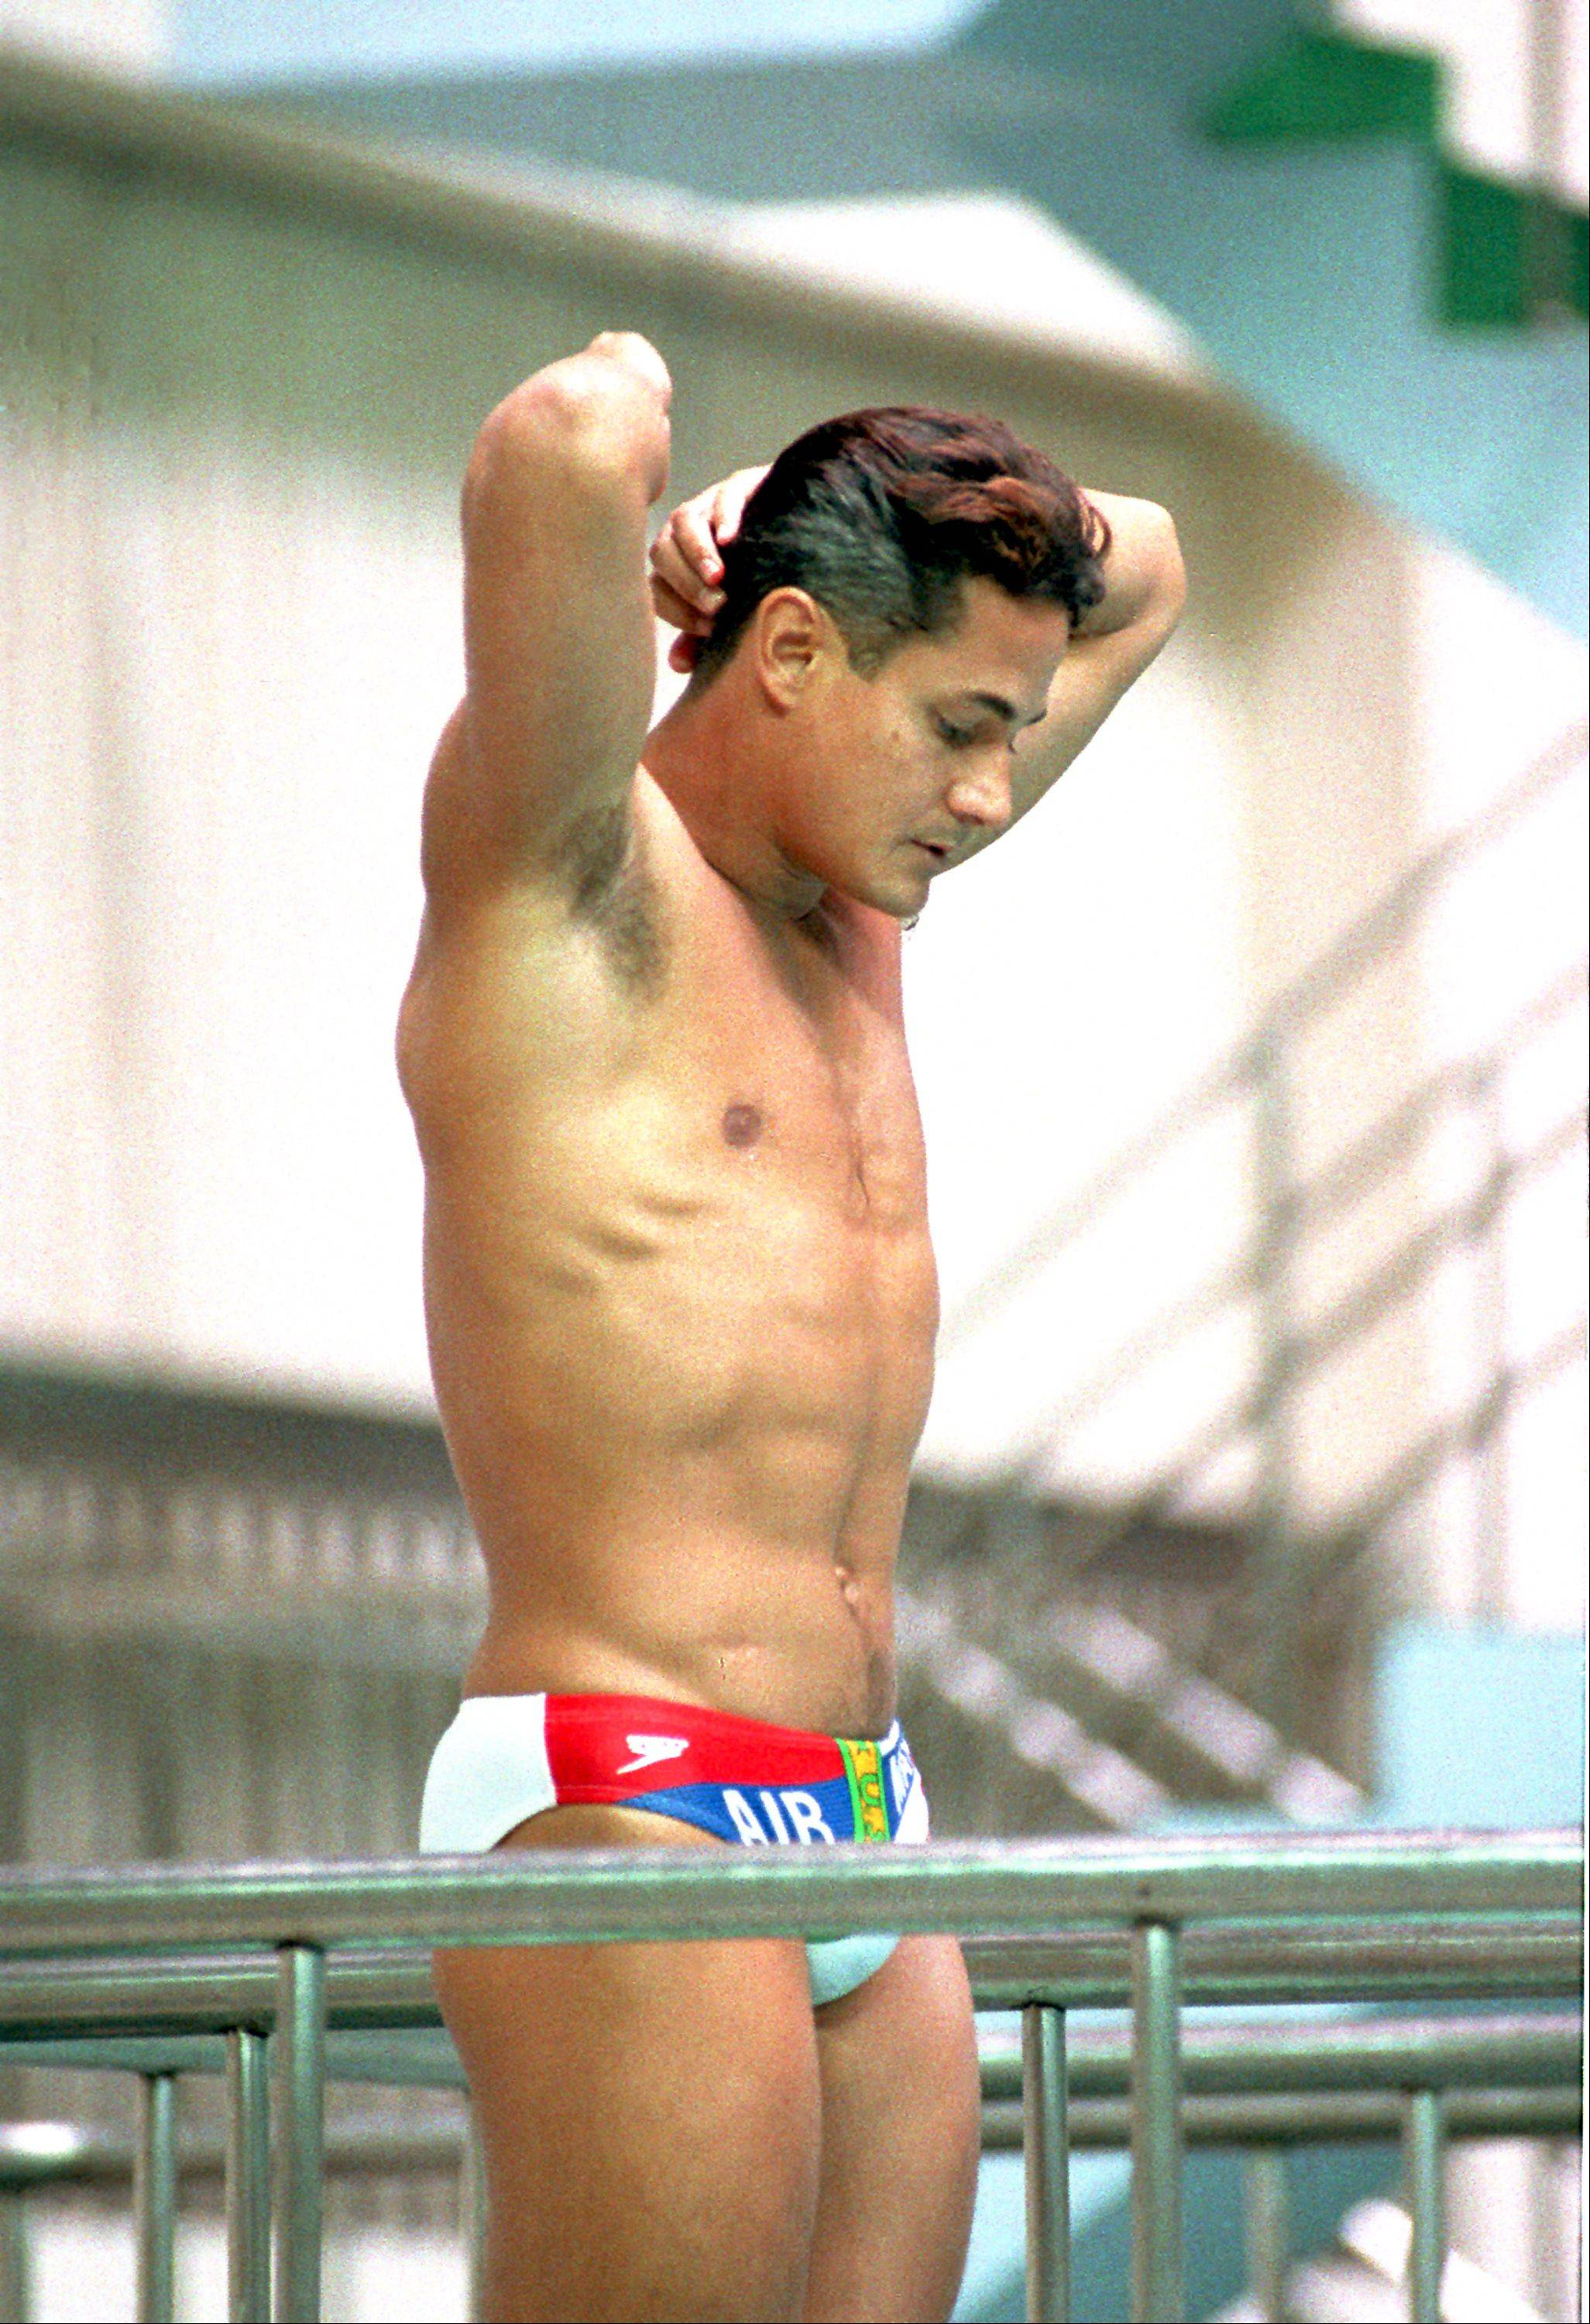 Greg Louganis, U.S.A., pauses momentarily before his 10th dive of the 11-dive preliminary springboard competition during the XXIV Summer Olympic Games in Seoul, South Korea on Sept. 19, 1988. Earlier, the defending champion struck his head on the springboard while competing in the men's preliminary diving event.